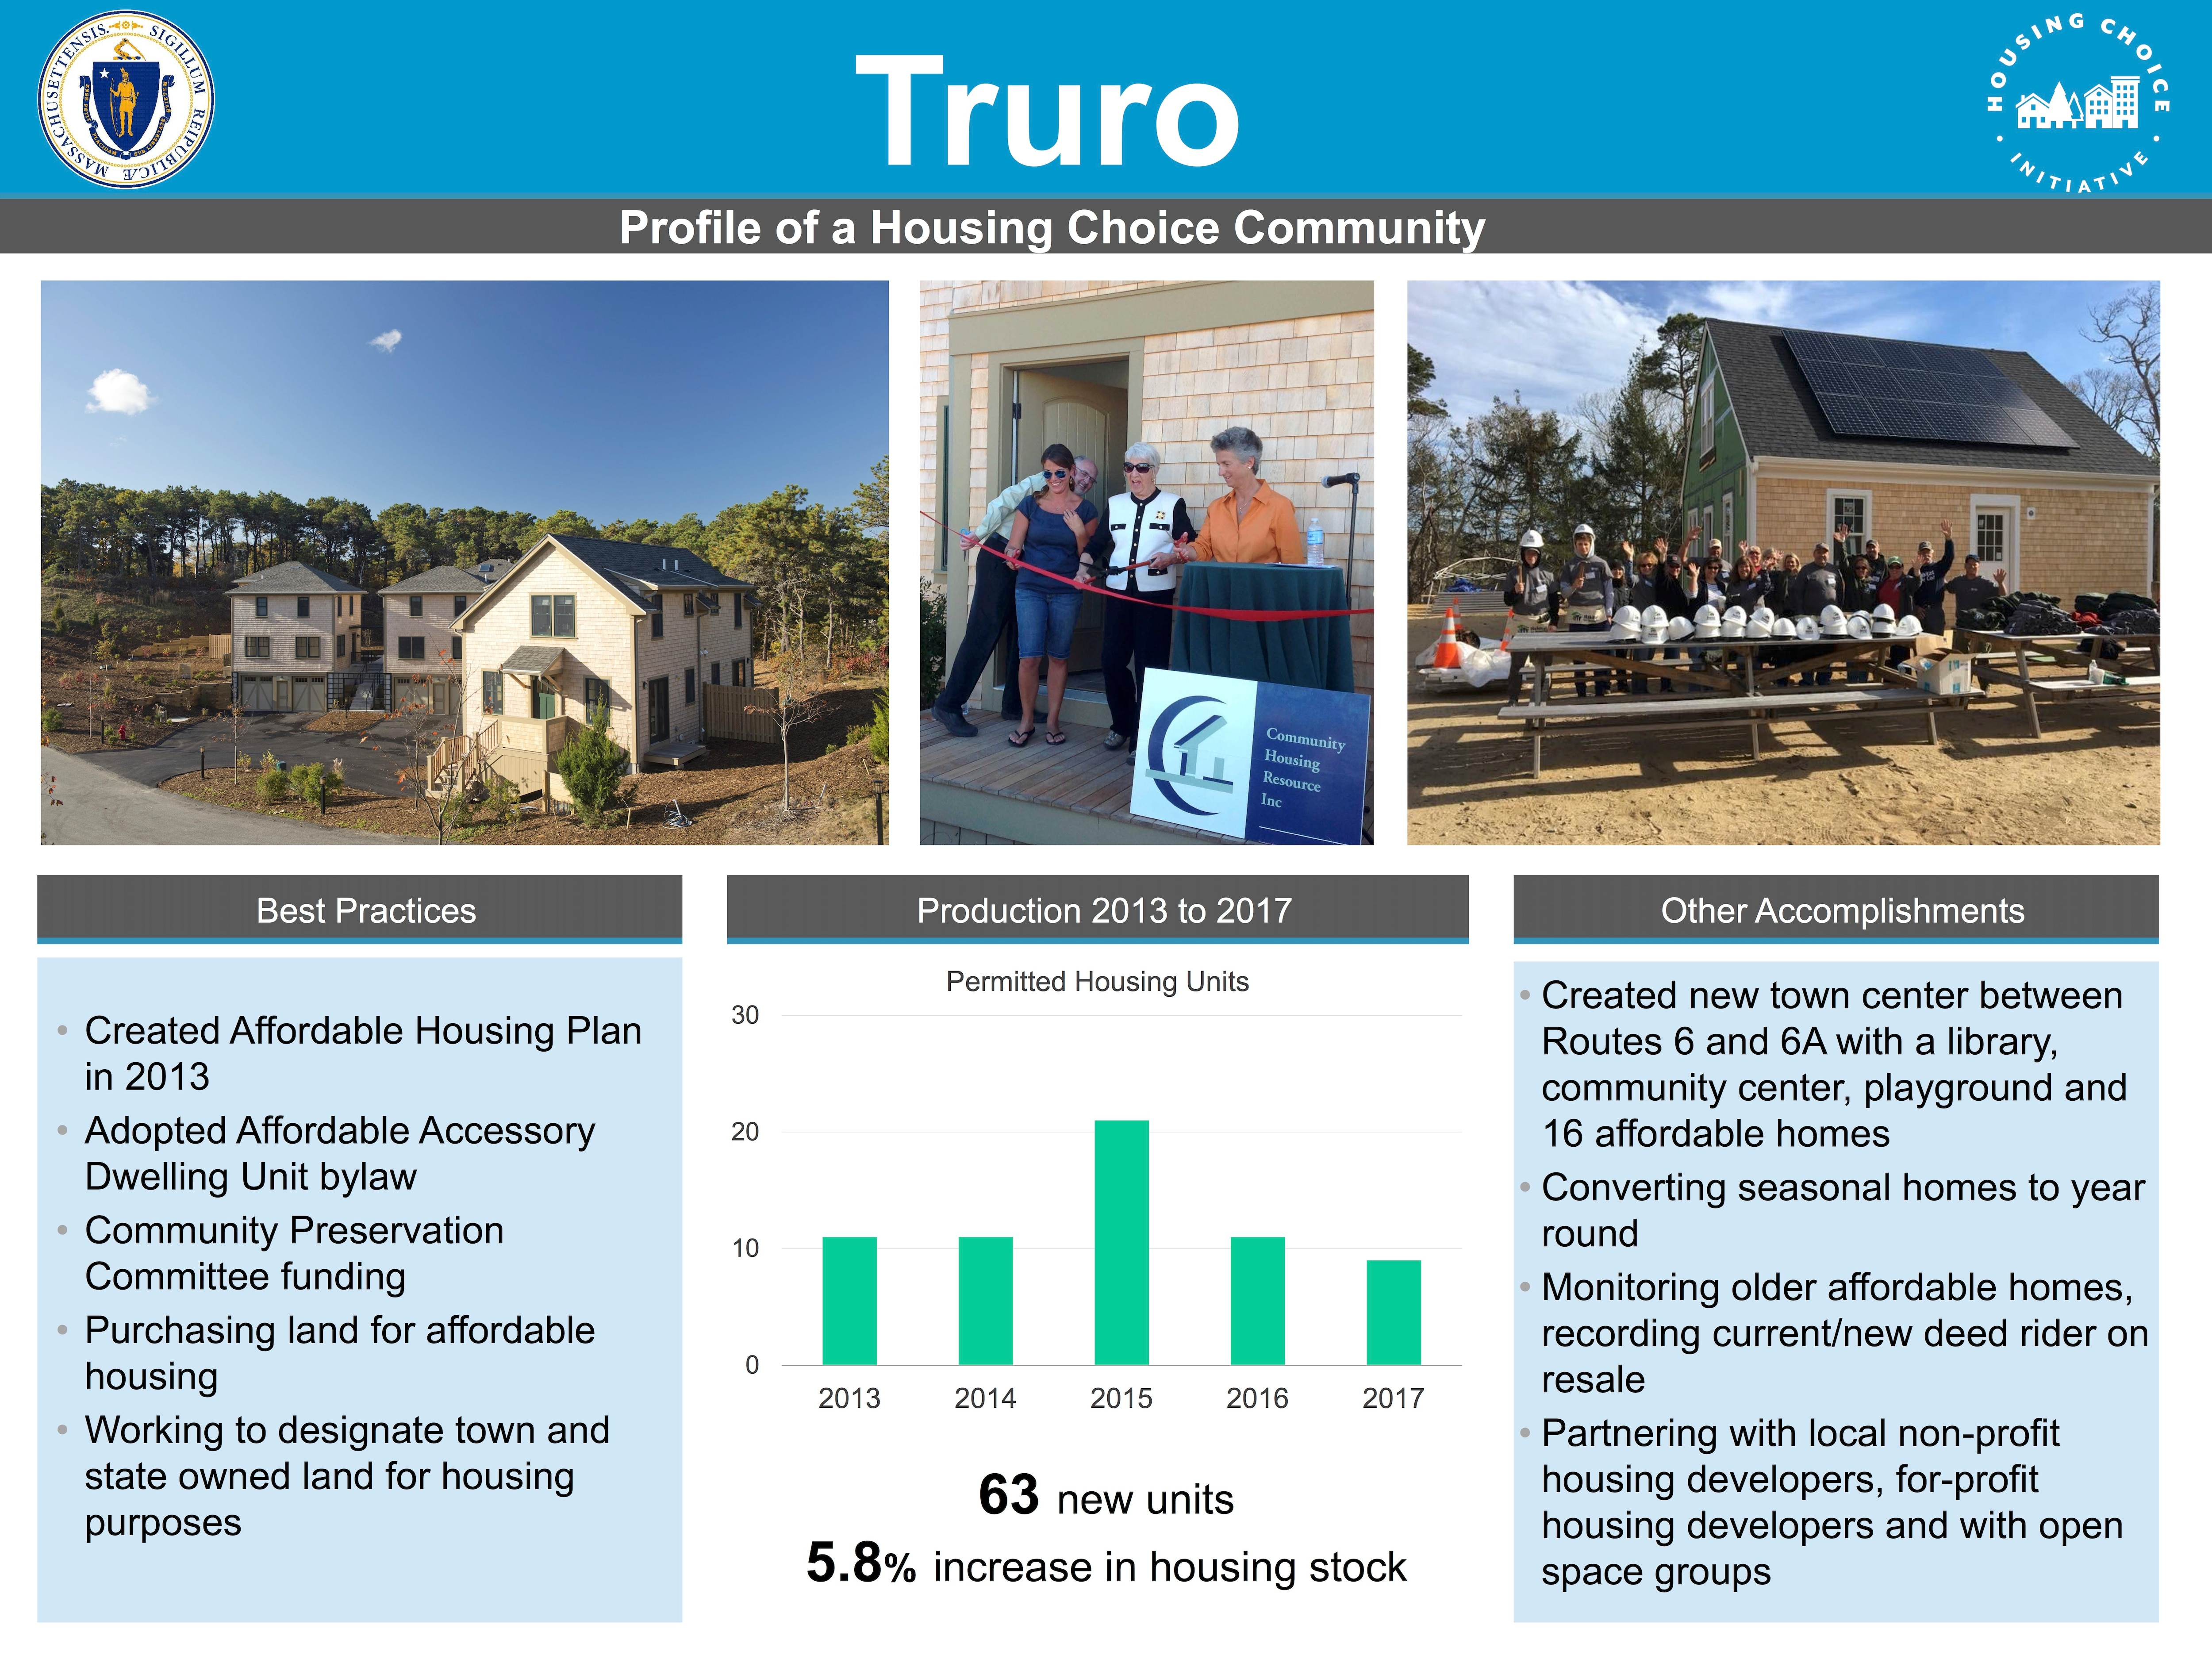 Profile of a Housing Choice Community - Truro